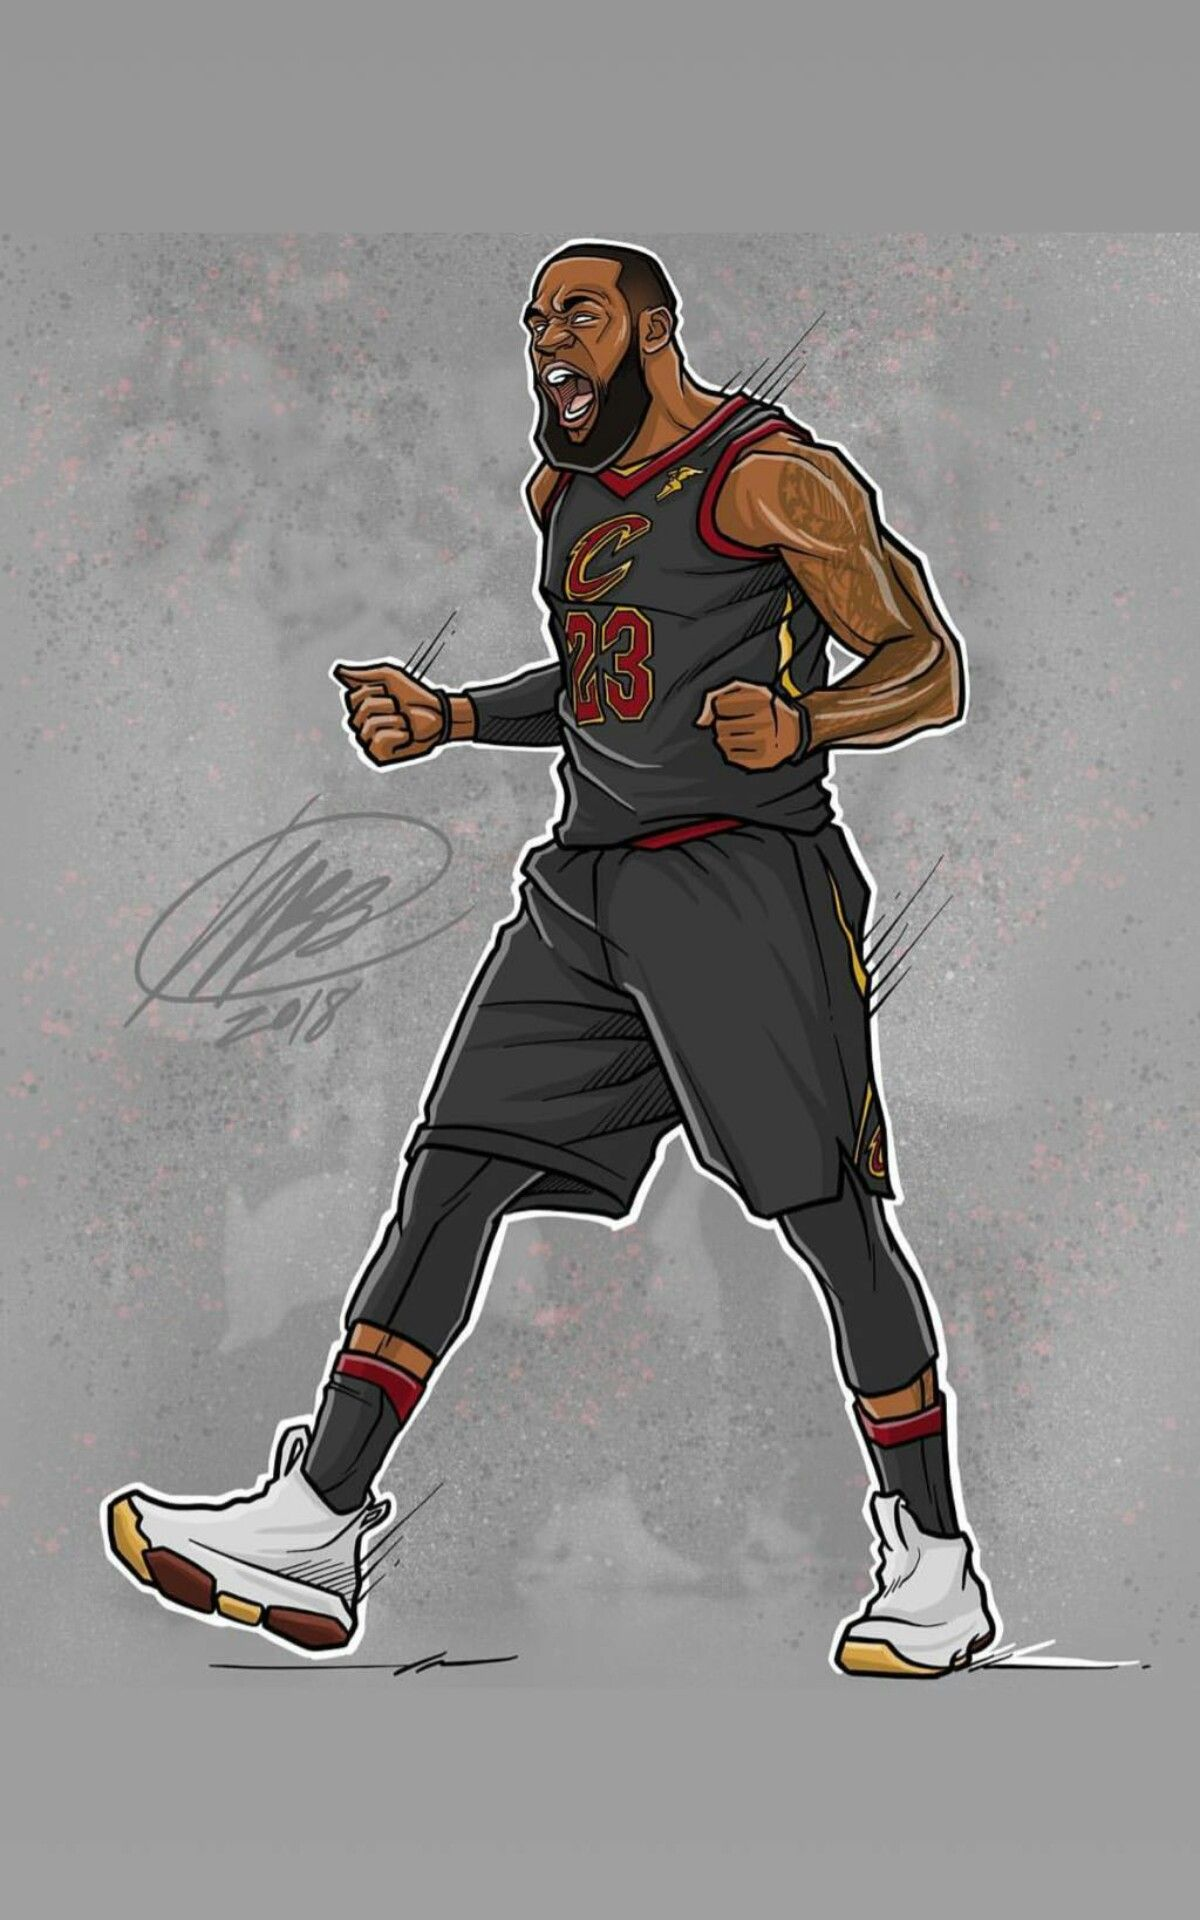 Pin by Dylan Wilson on LeBron James Nba wallpapers